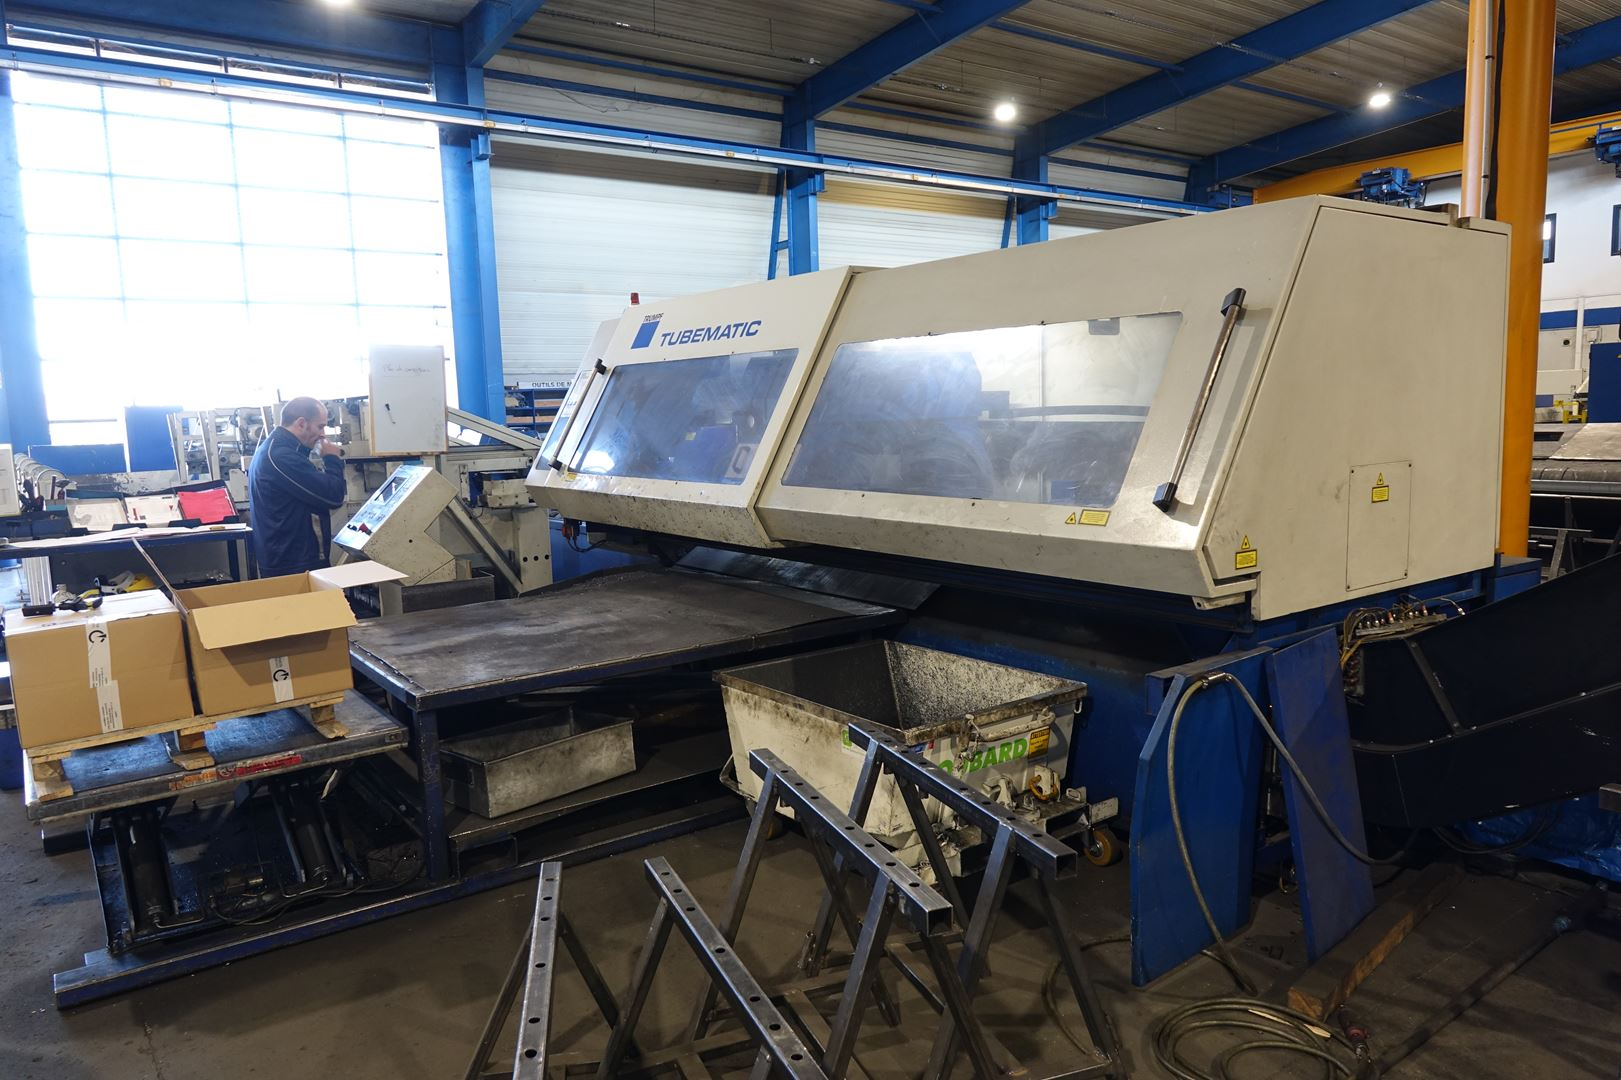 used  Laser Cutting Machine Trumpf Tubematic